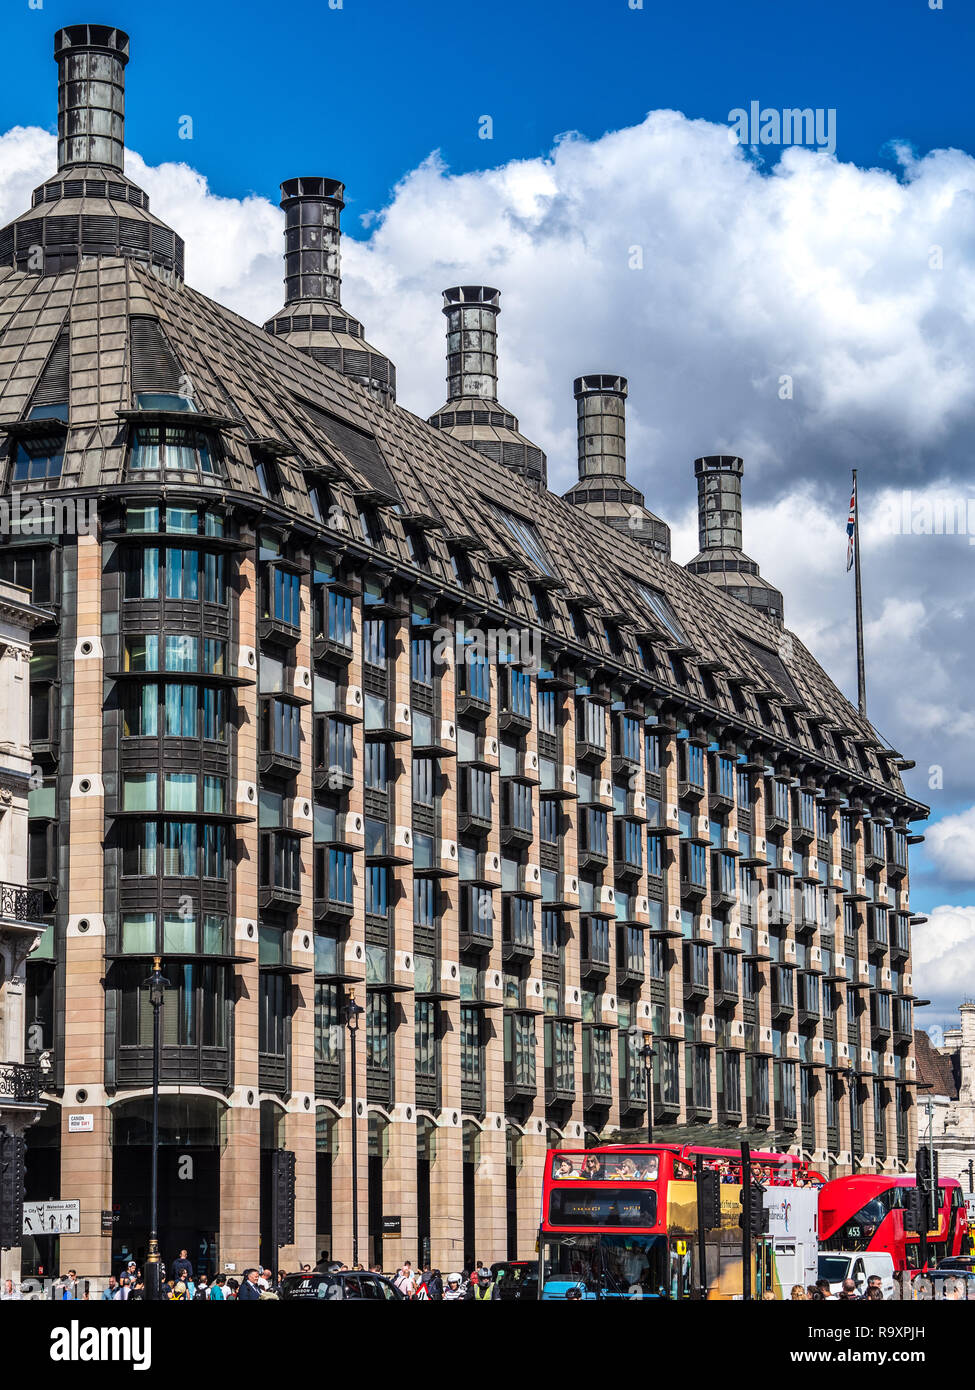 Portcullis House Westminster London - Office Building for UK MPs - Opened 2001 Architects Michael Hopkins and Partners - Stock Image